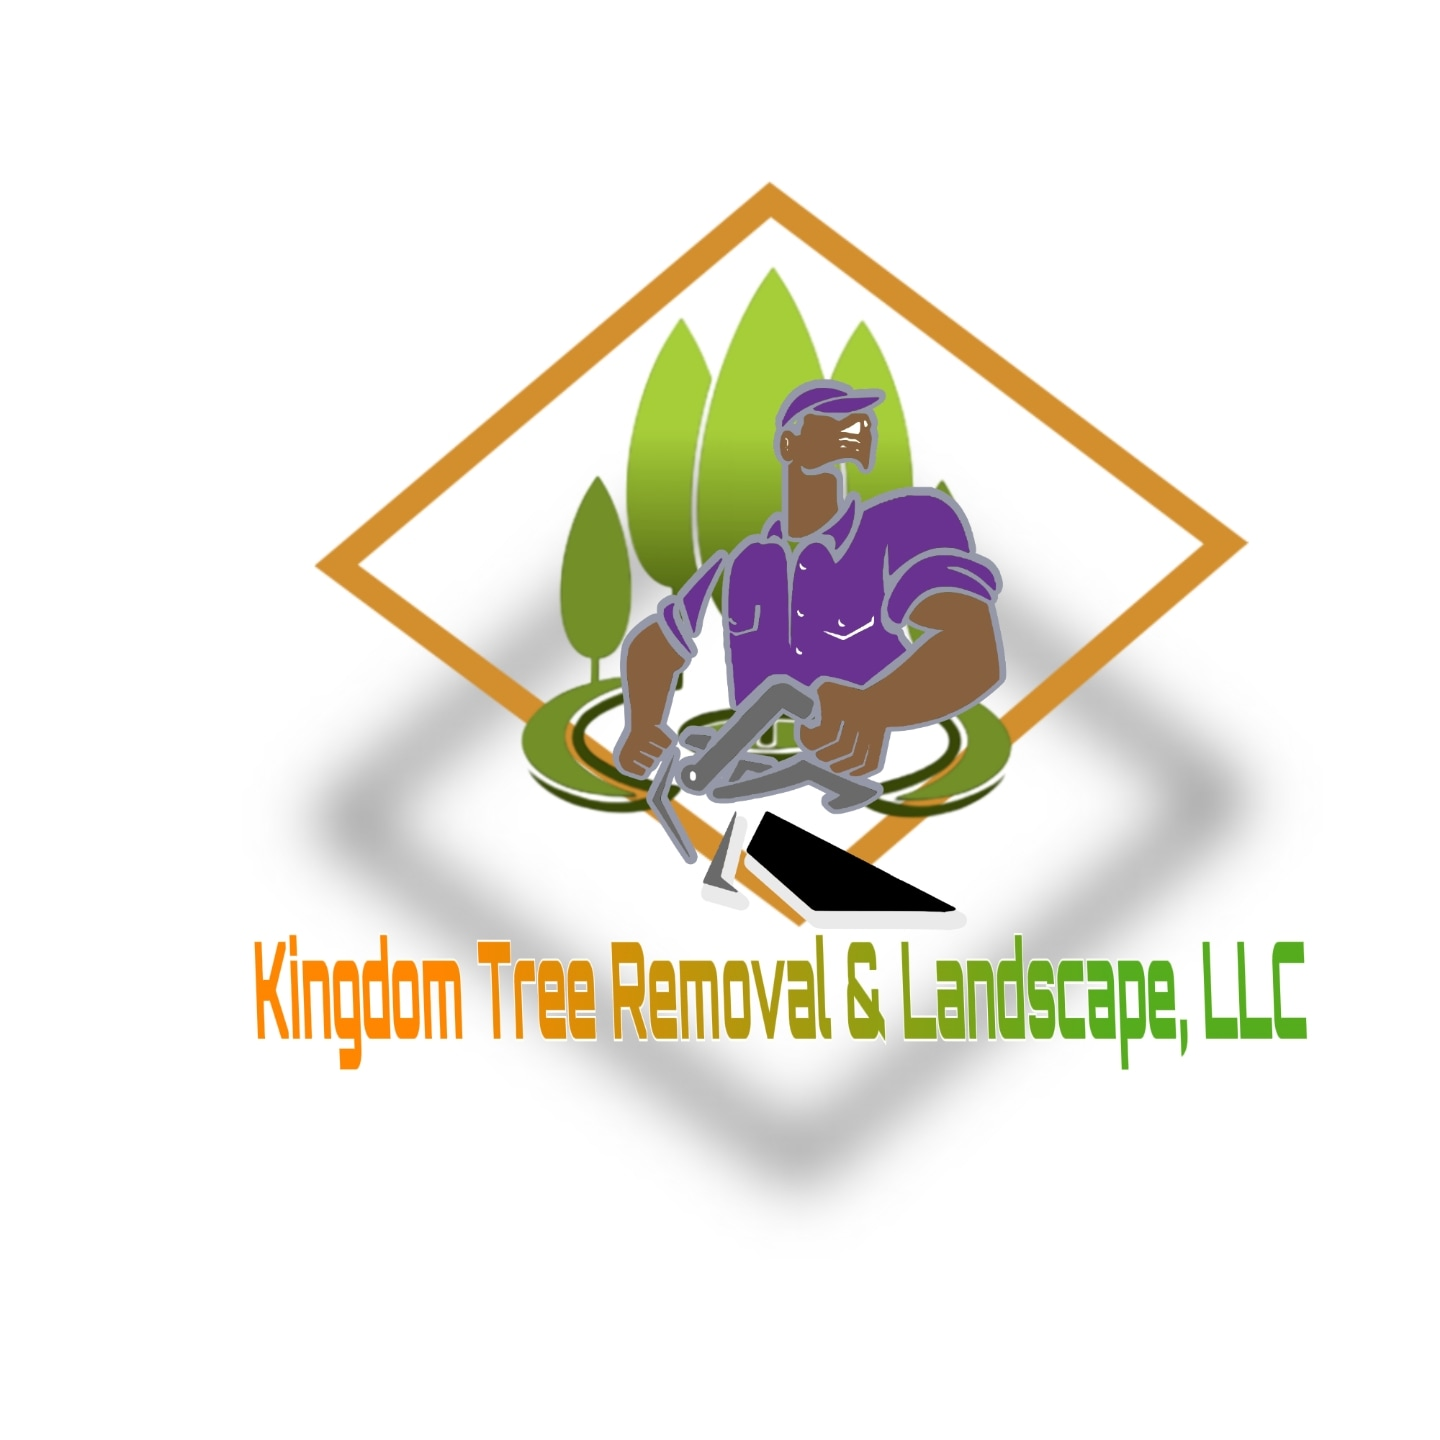 Kingdom Tree Removal and Landscaping